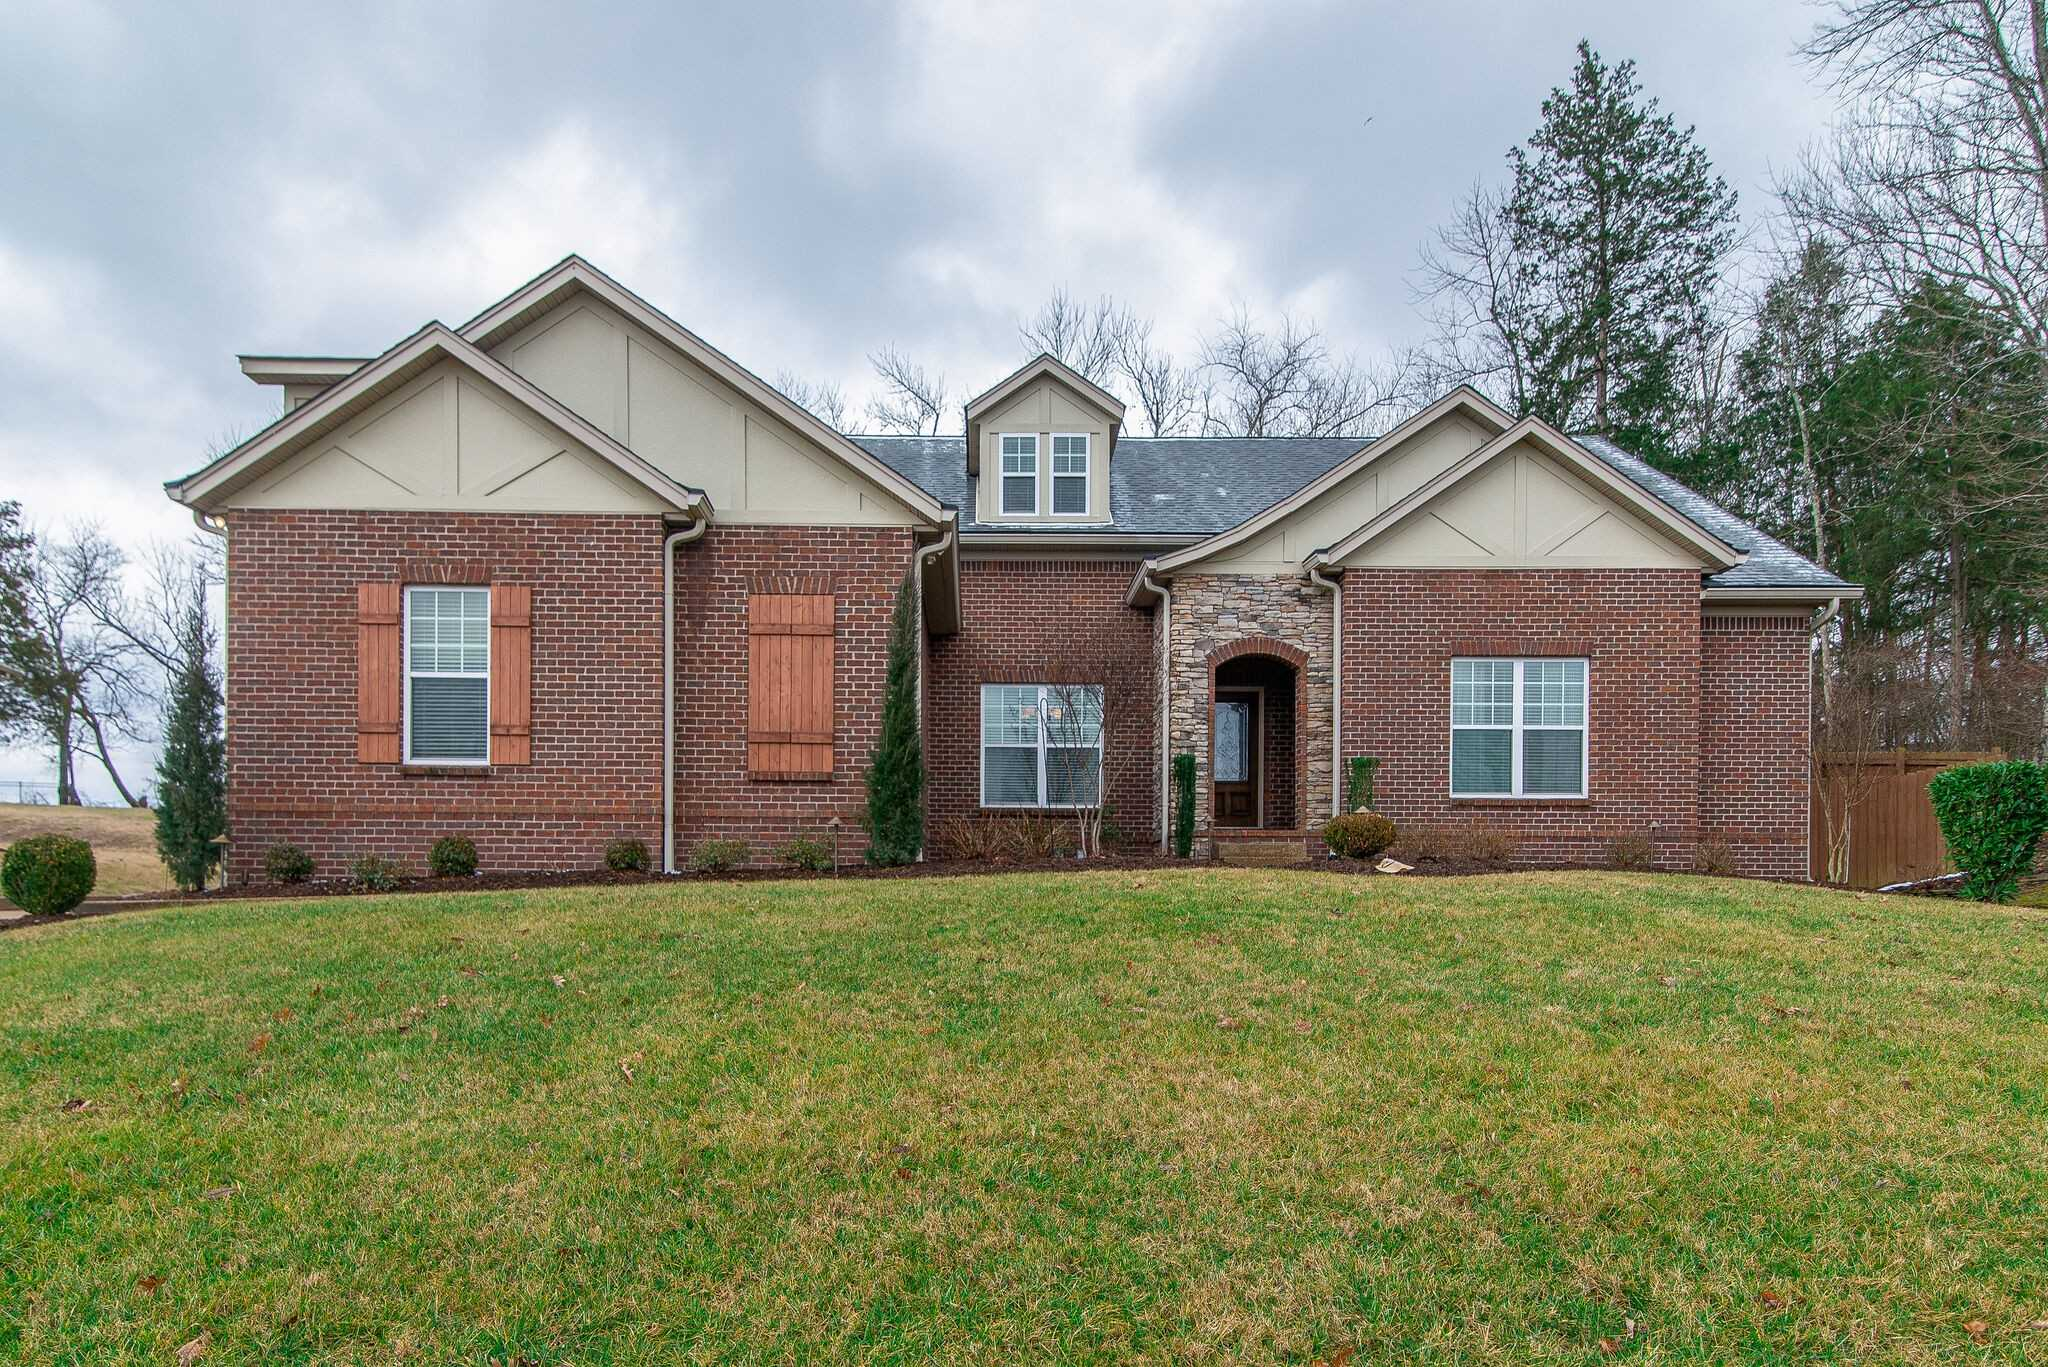 $640,000 - 4Br/4Ba -  for Sale in Timber Trail Ph6, Mount Juliet